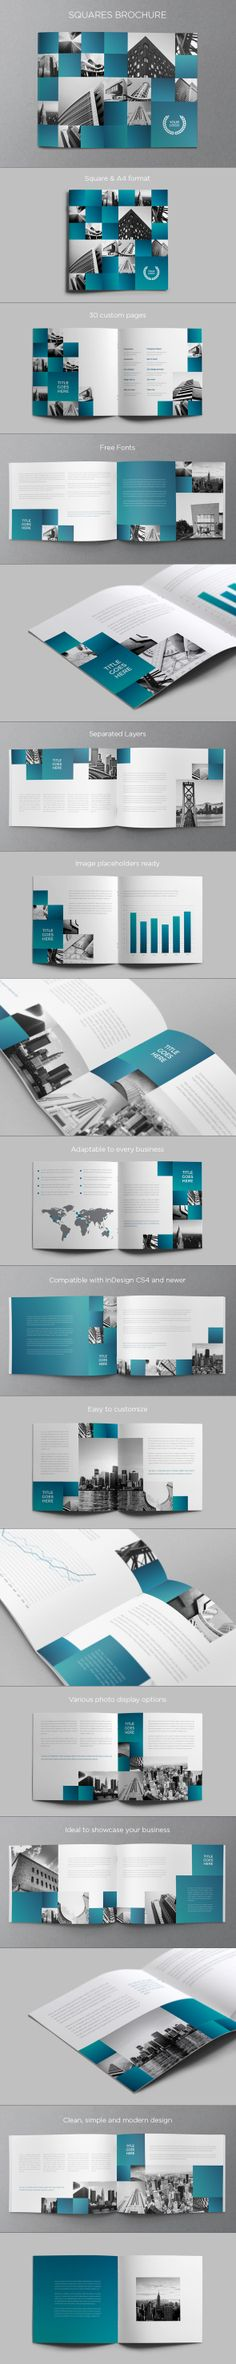 Architecture Squares Brochure. Download here: http://graphicriver.net/item/architecture-squares-brochure/5993725?ref=abradesign #design #brochure